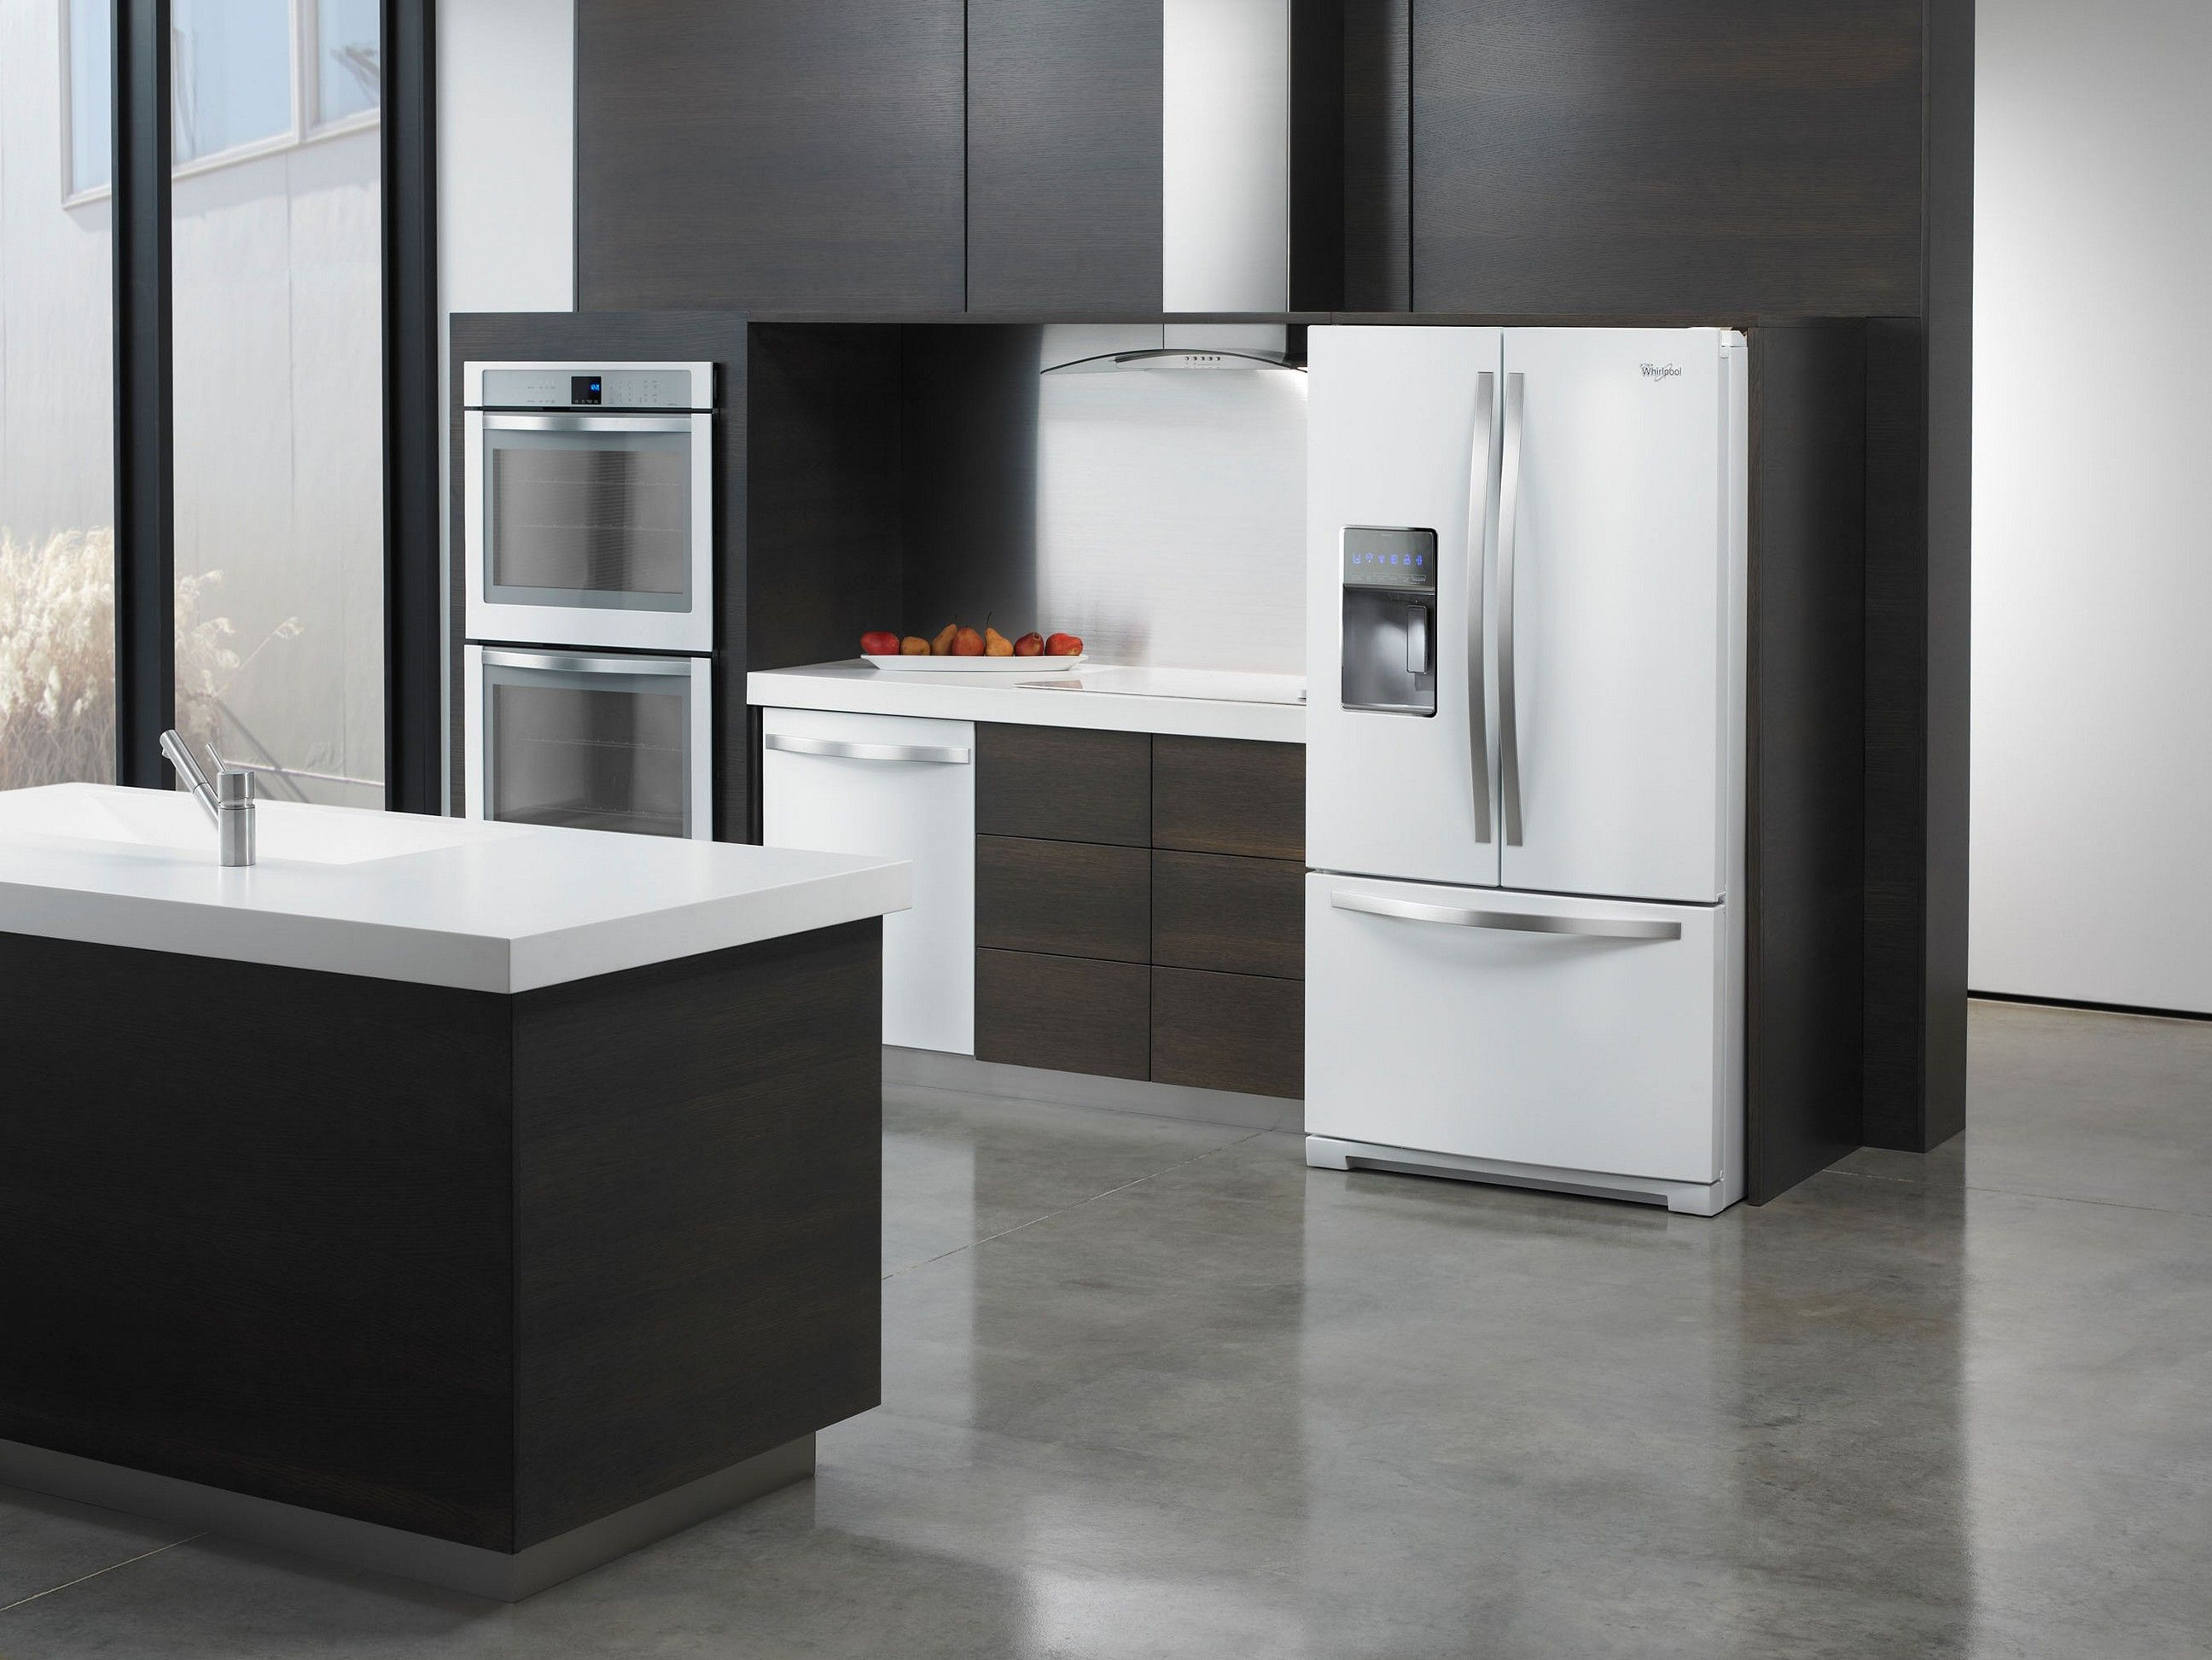 Whirlpool white ice line - White Appliances